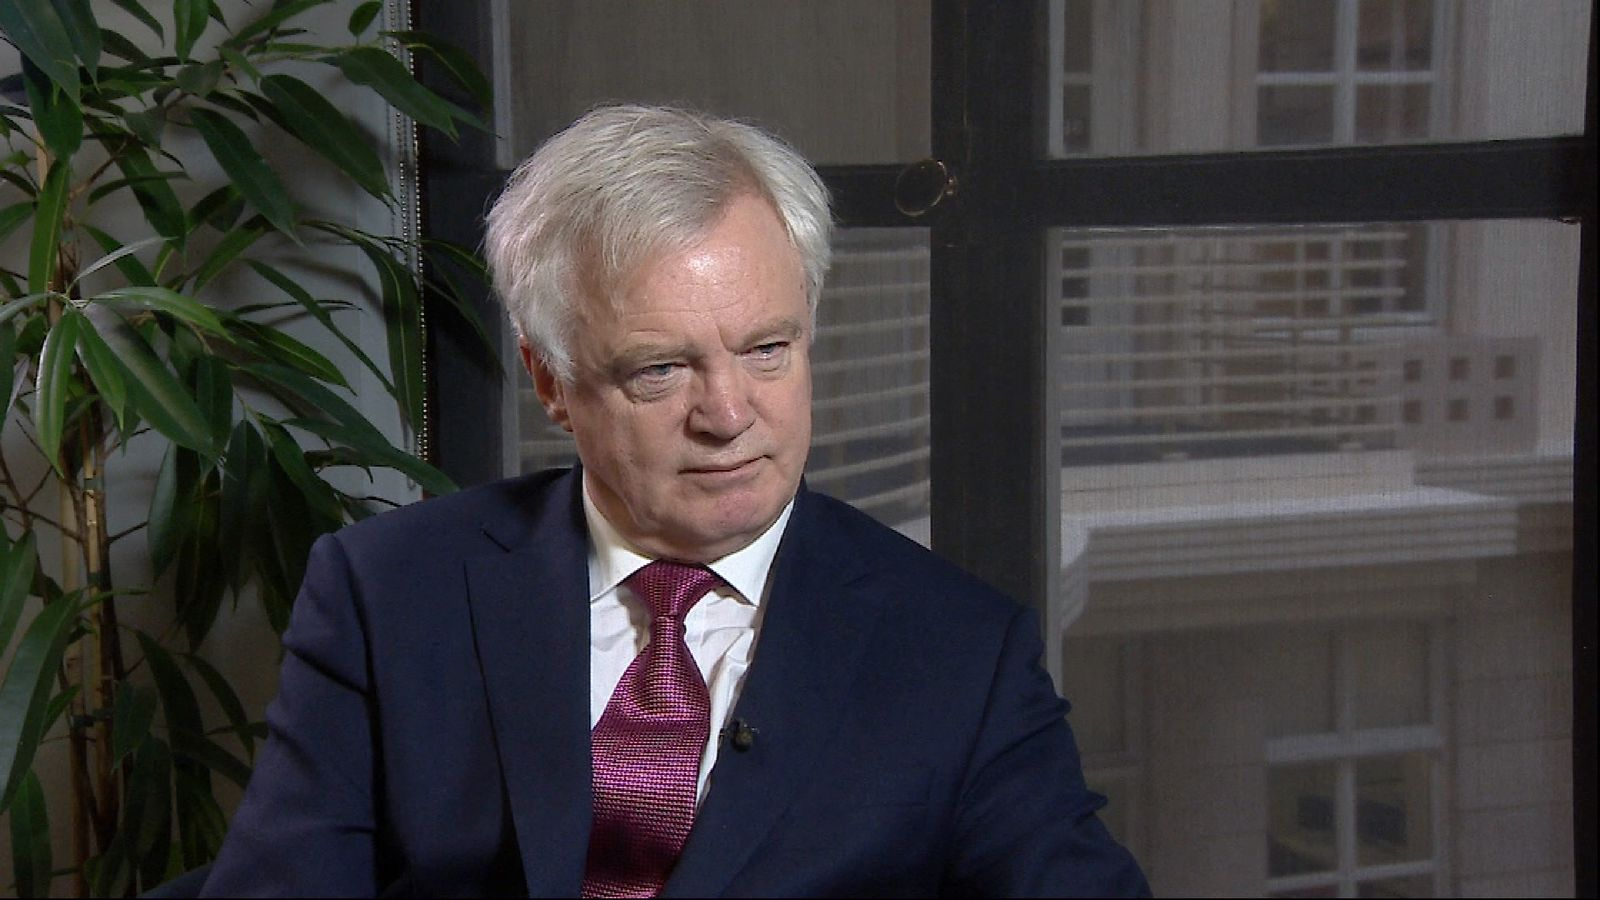 Brexit Secretary David Davis being interviewed in room.